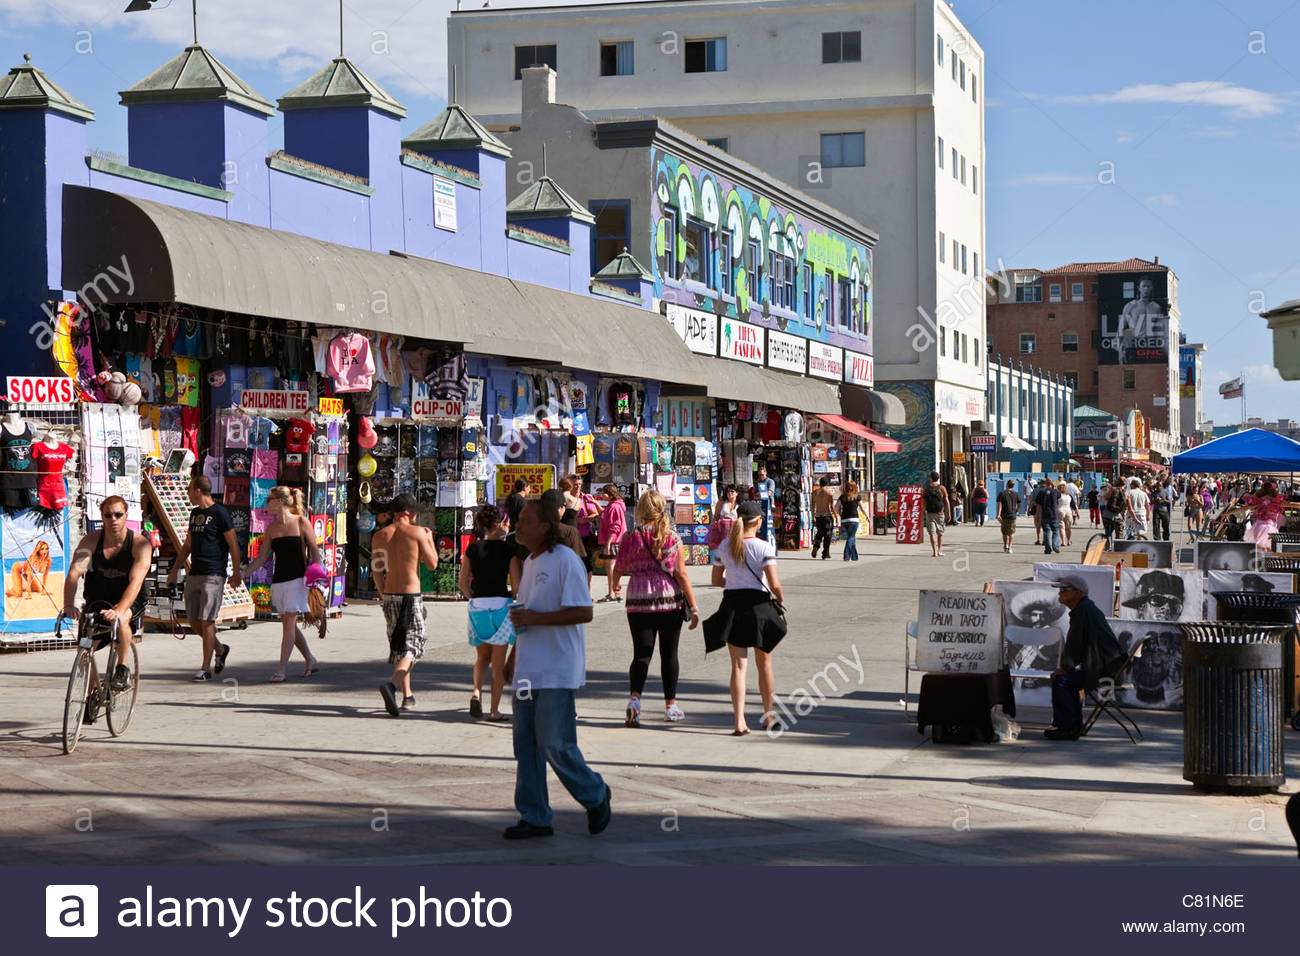 Editorial photo of the colorful Venice Beach boardwalk in Southern California. - Stock Image